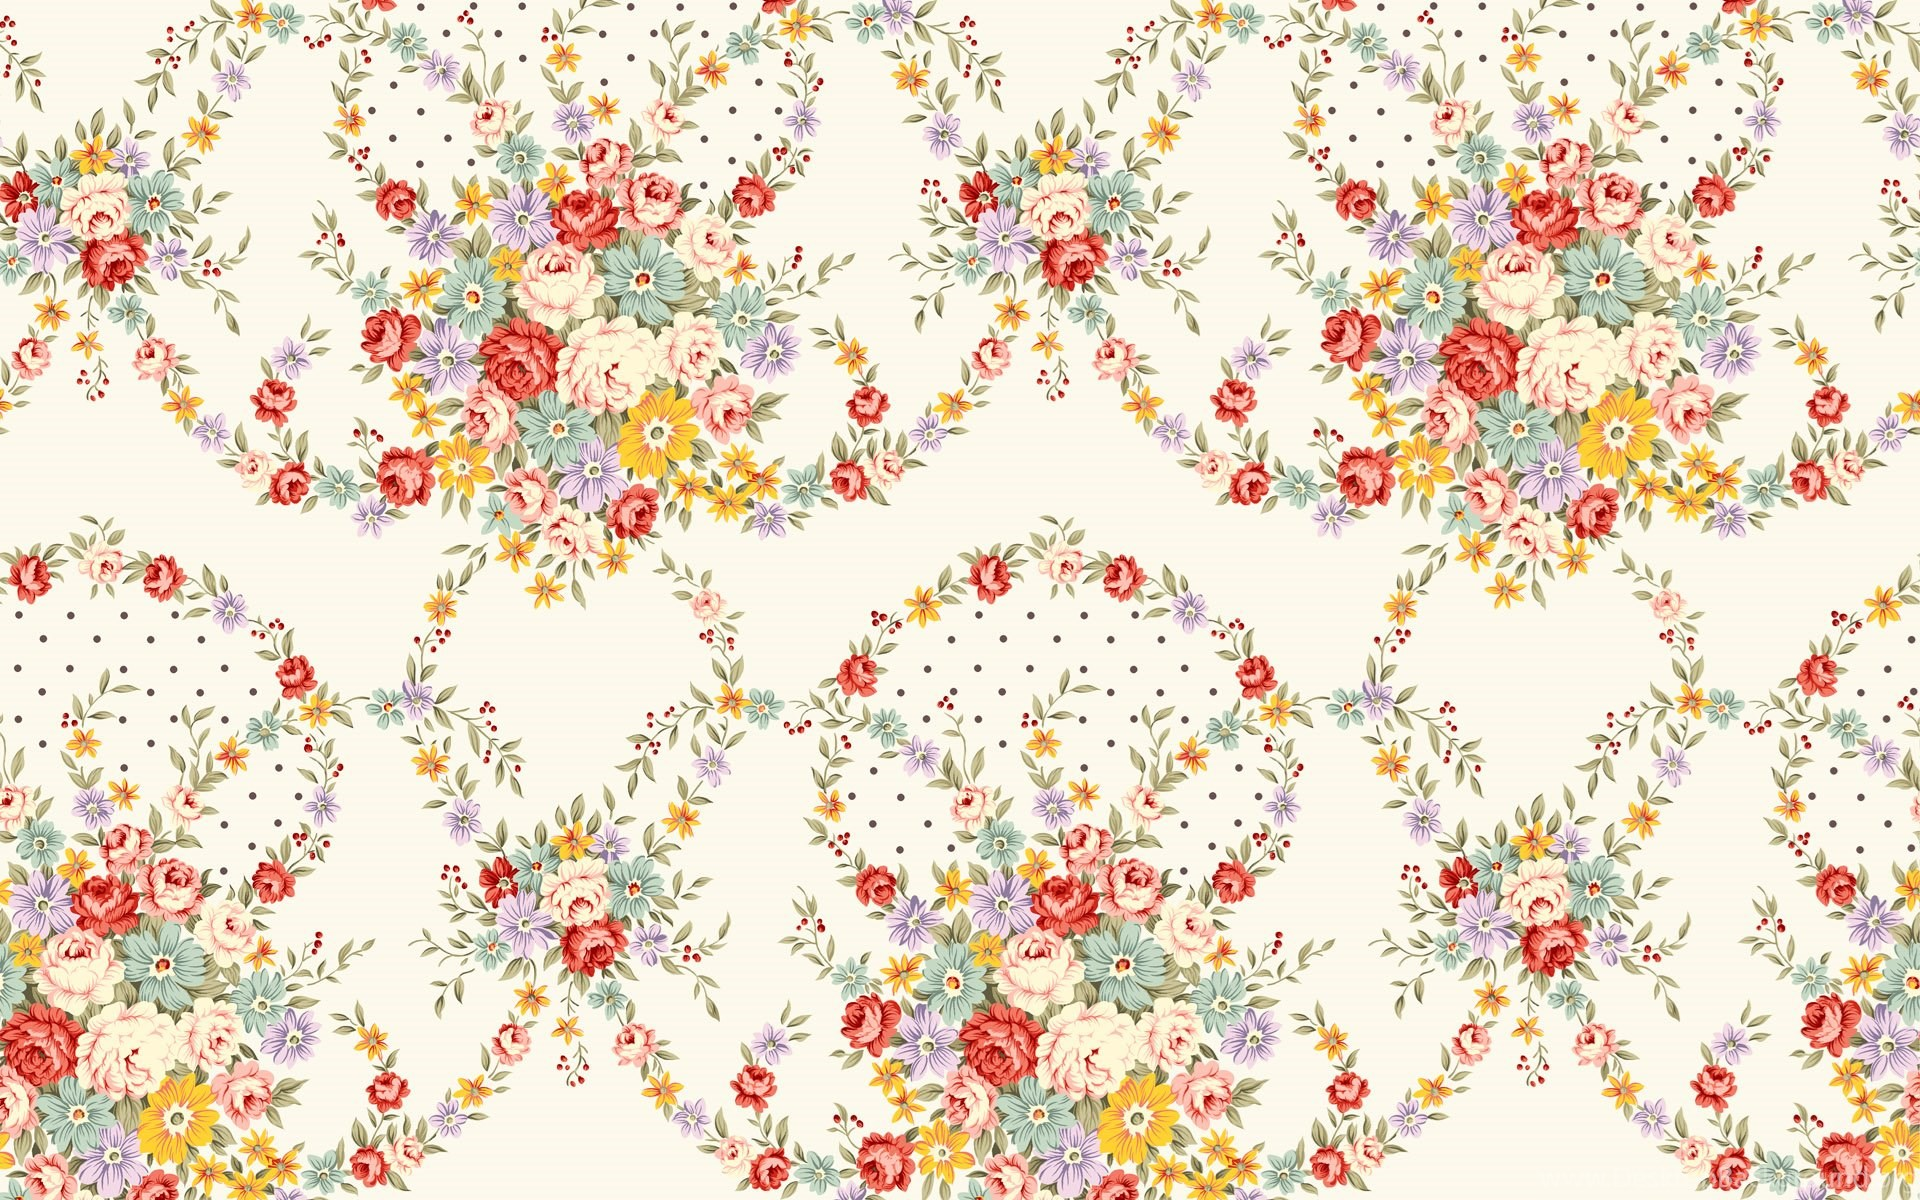 Computer Floral Pattern Wallpapers Desktop Backgrounds 1600x1200